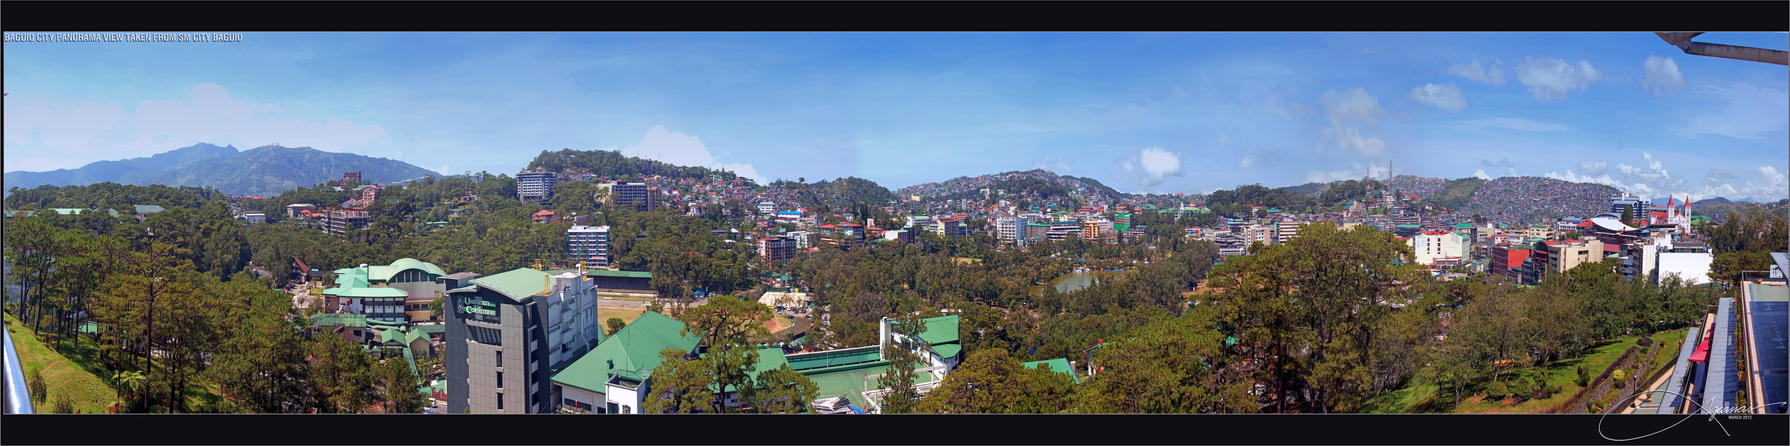 BAGUIO CITY PANORAMA VIEW by clarenceangelo